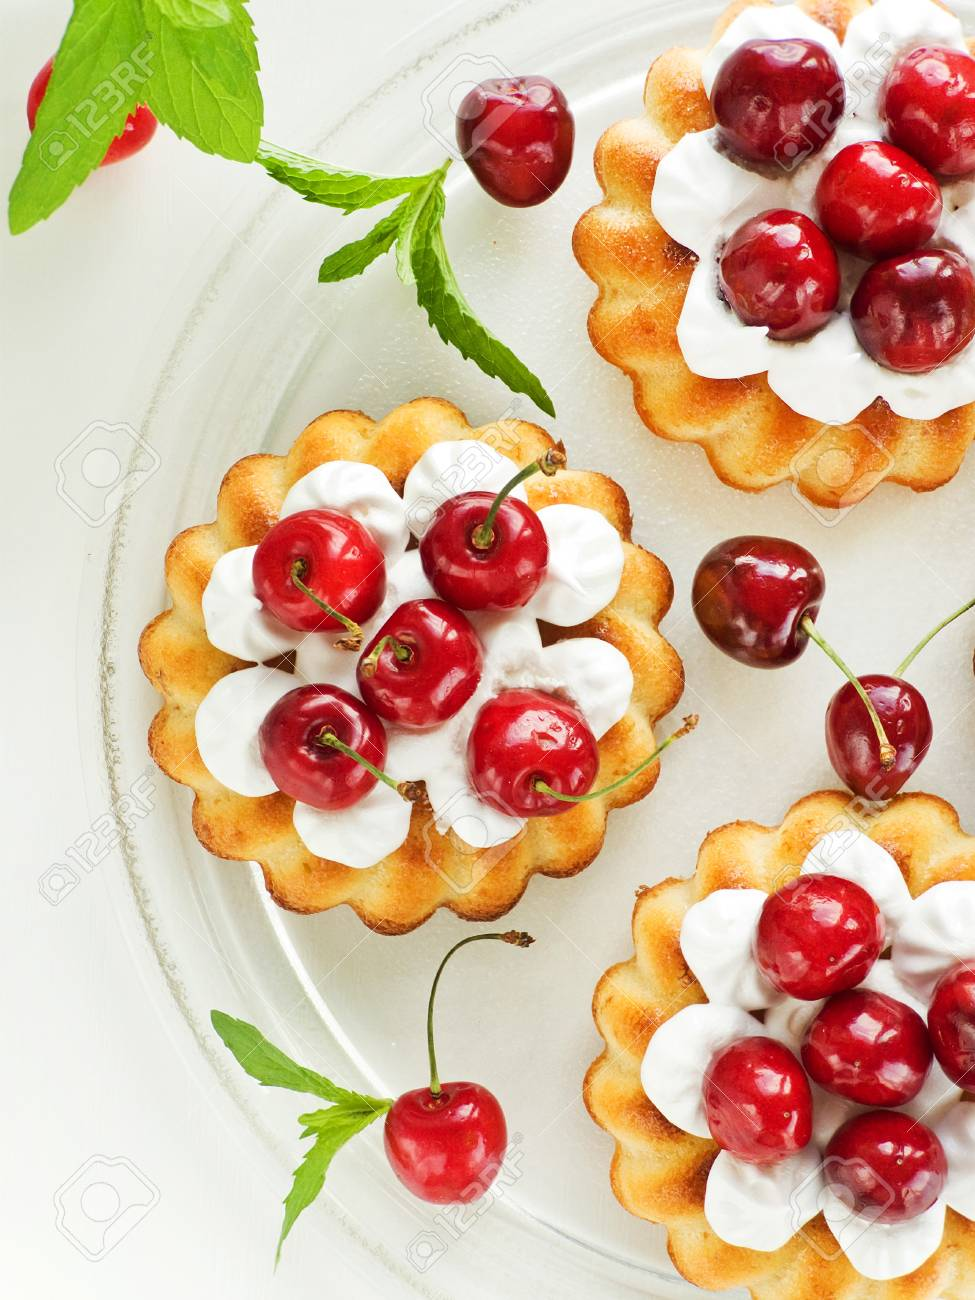 Coconut cakes with whipped cream and sweet cherry. Viewed from above. Stock Photo - 20322093